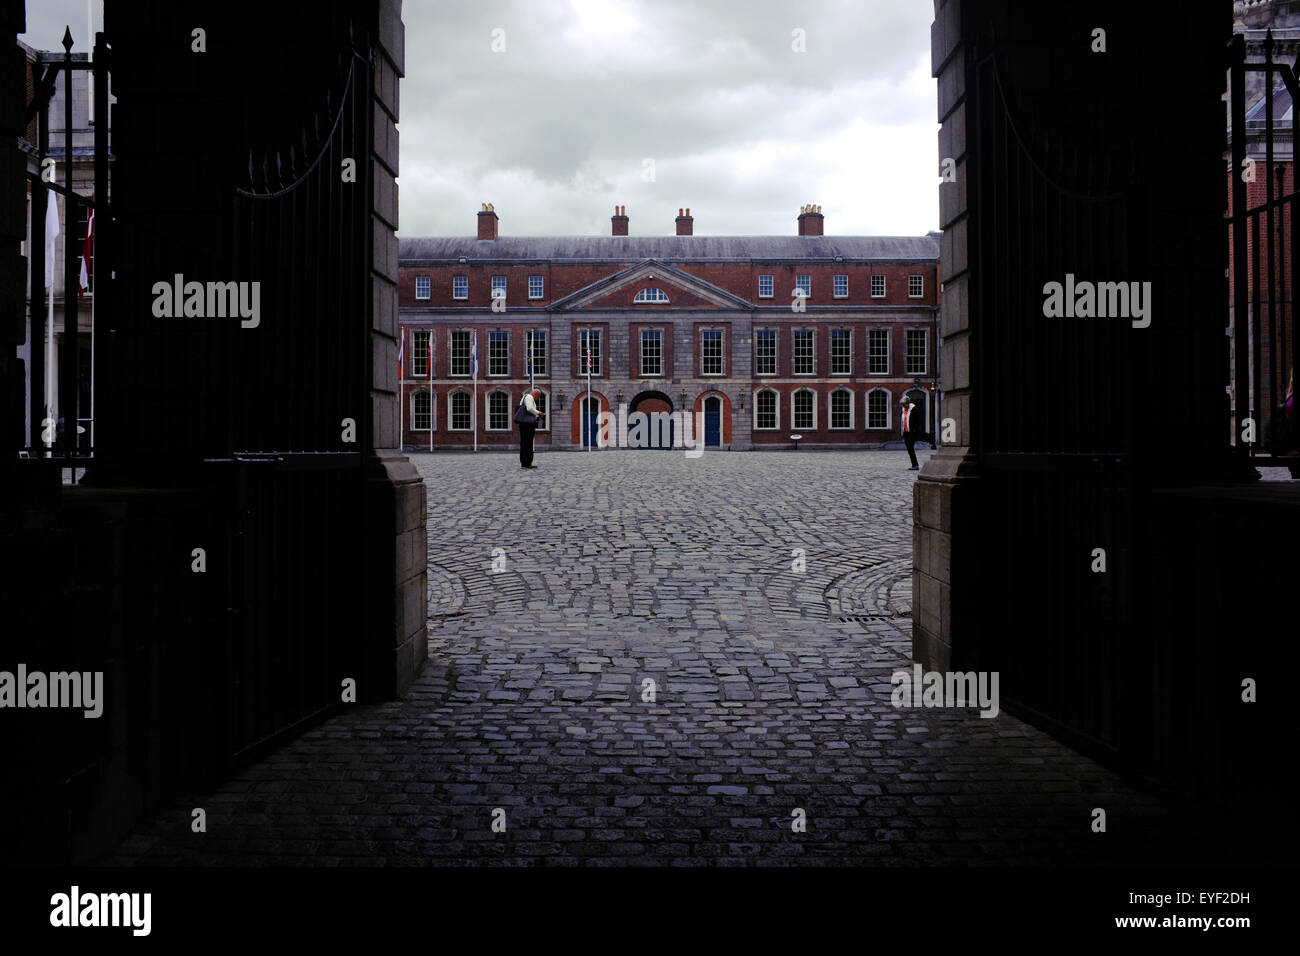 A view of the Dublin Castle State Apartments seen through an entrance archway. - Stock Image